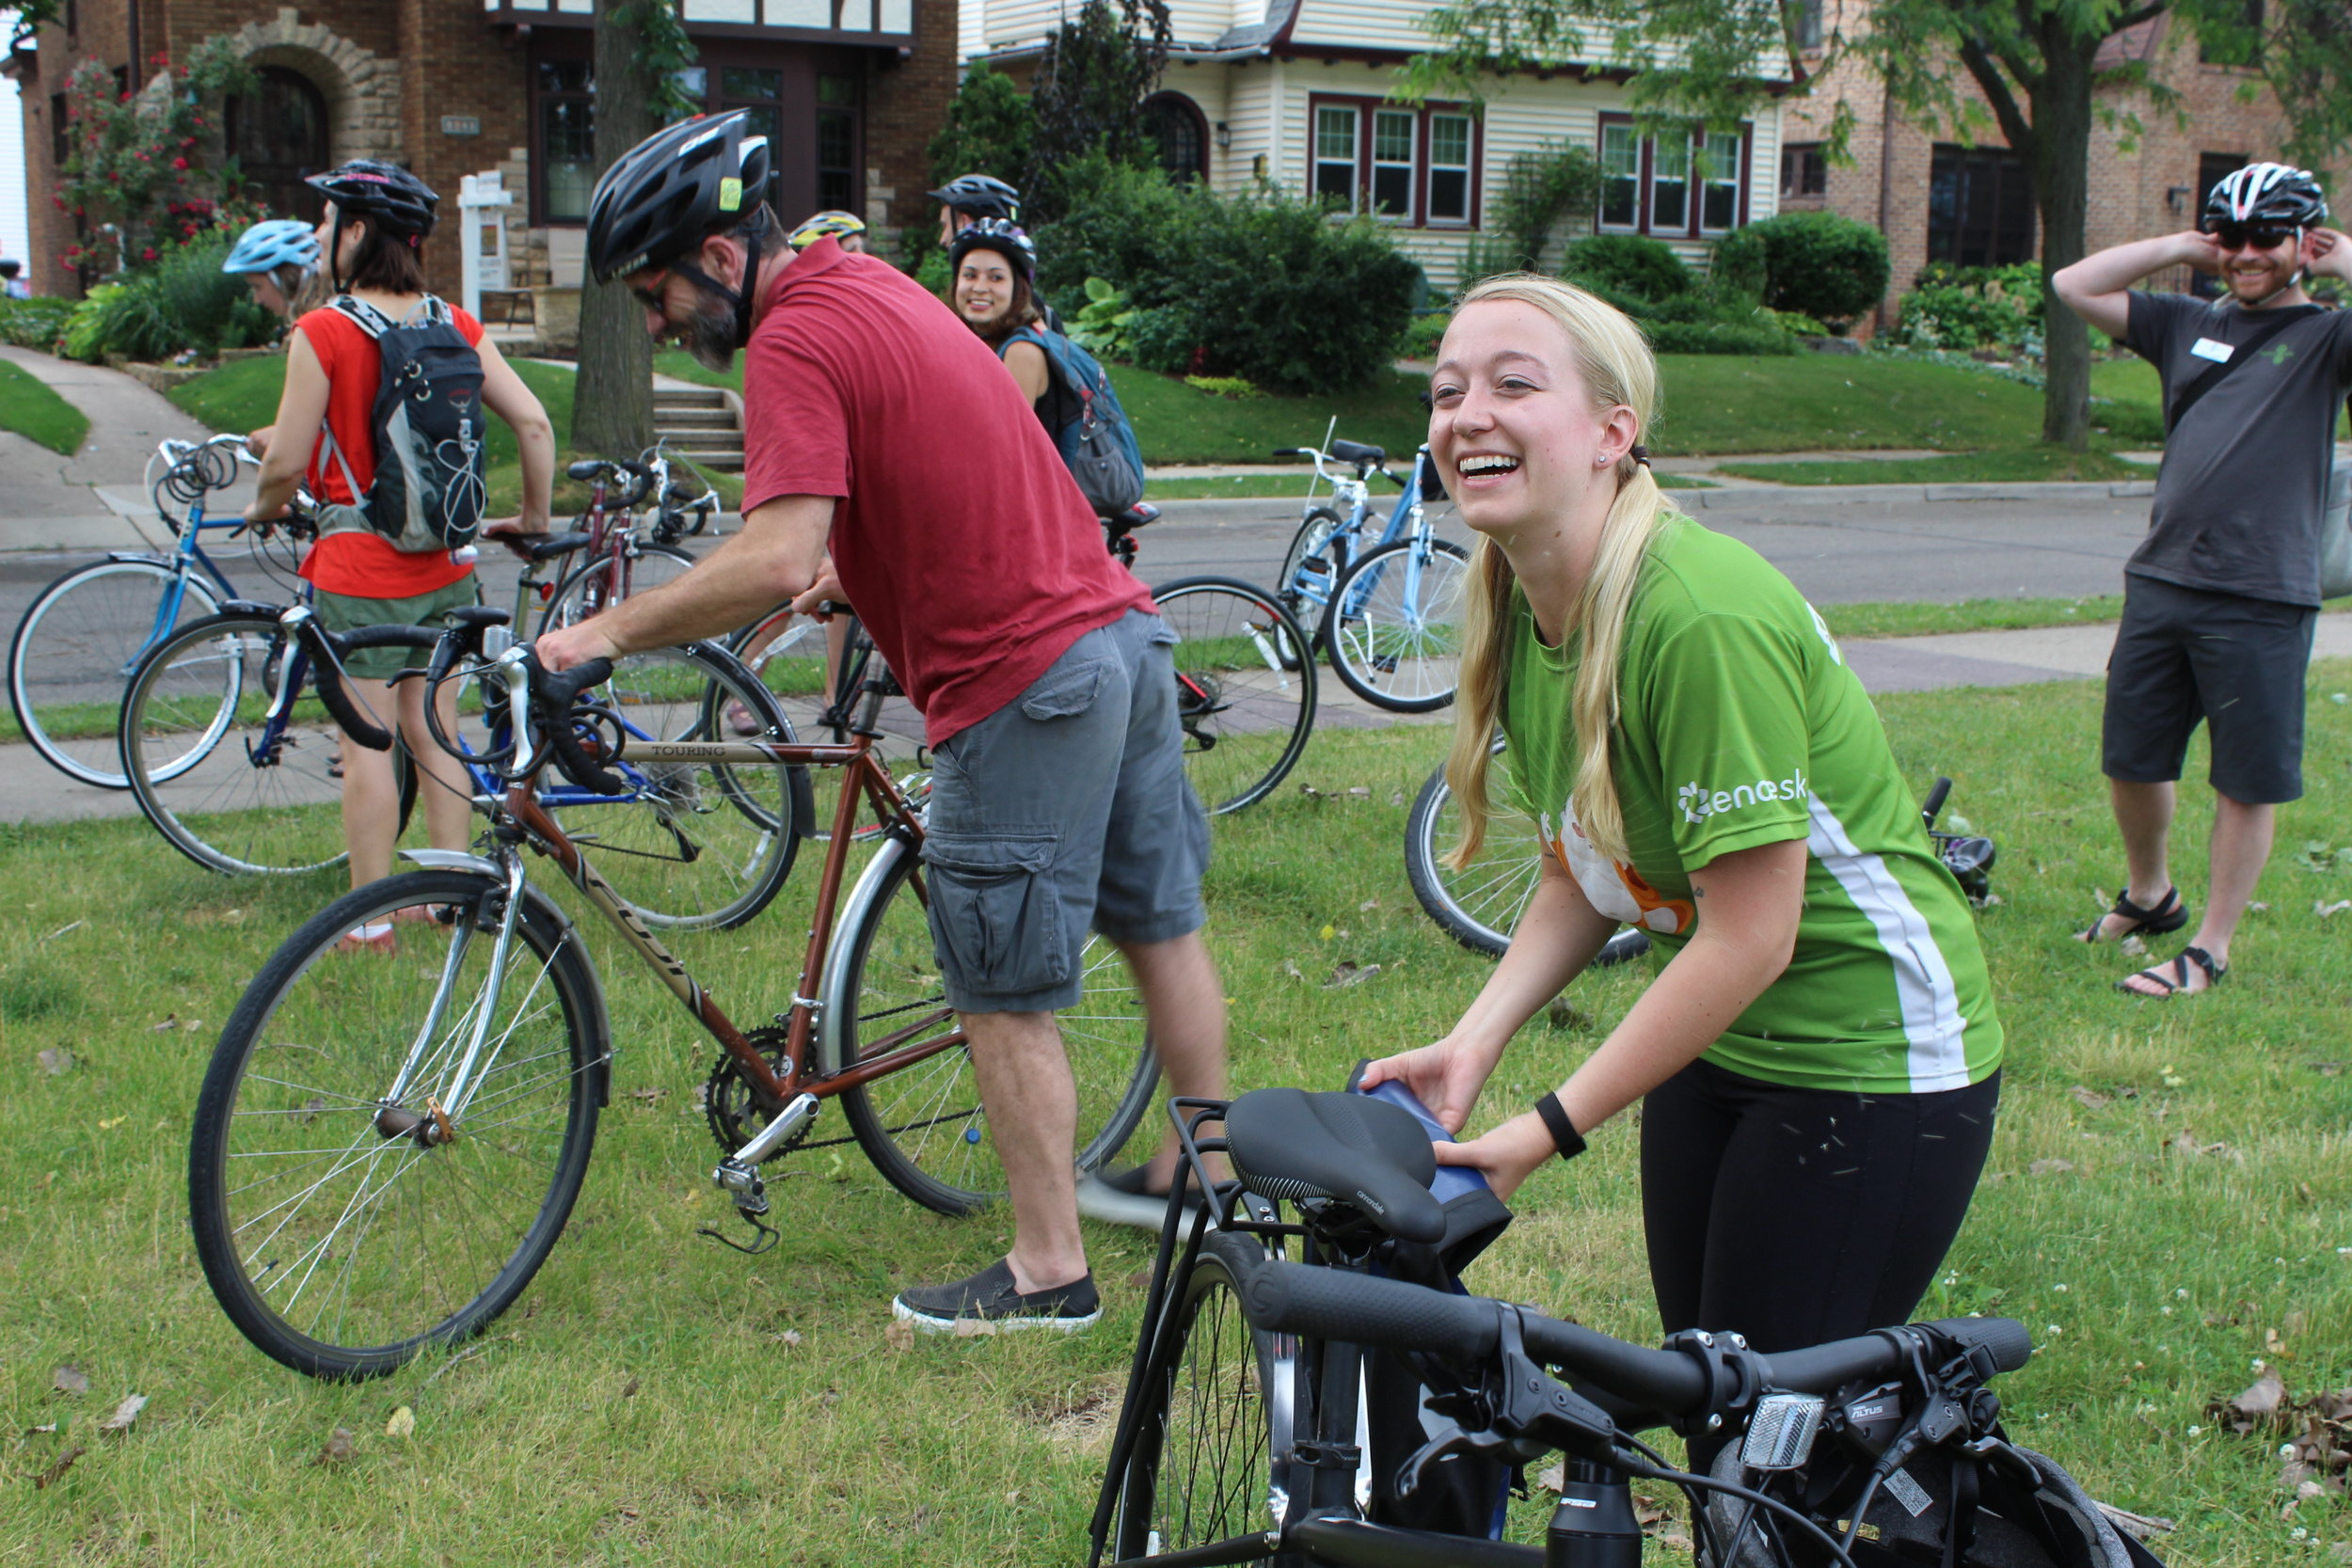 Zendesk supported the event with bike safety guides